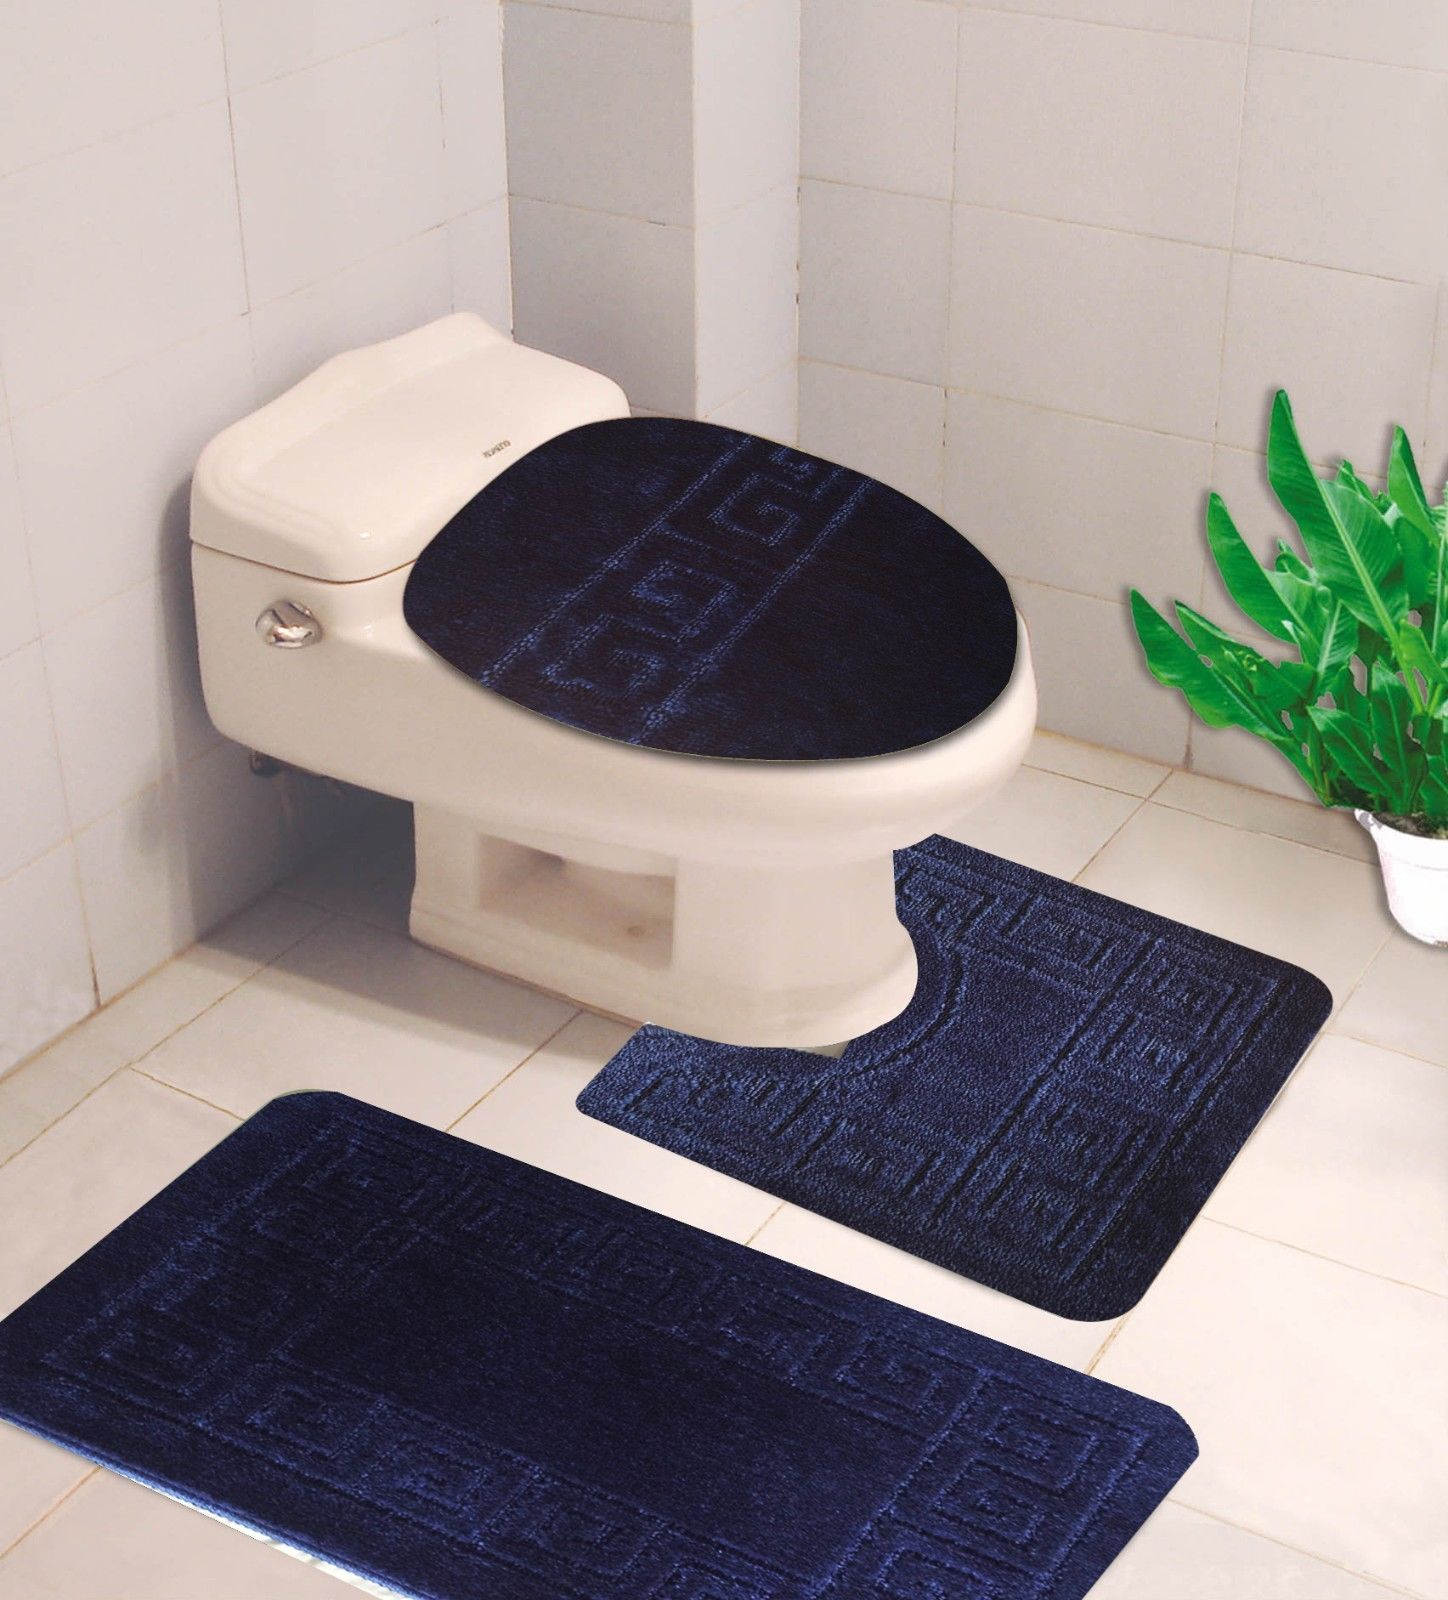 """#10  Navy Blue 3-Piece Embossed Bathroom Mat Set, Solid Large Rug 19""""x 30"""", Contour Mat 19""""x19"""", and Toilet Lid Cover 19""""x19"""" with Non-Skid Rubber Back"""